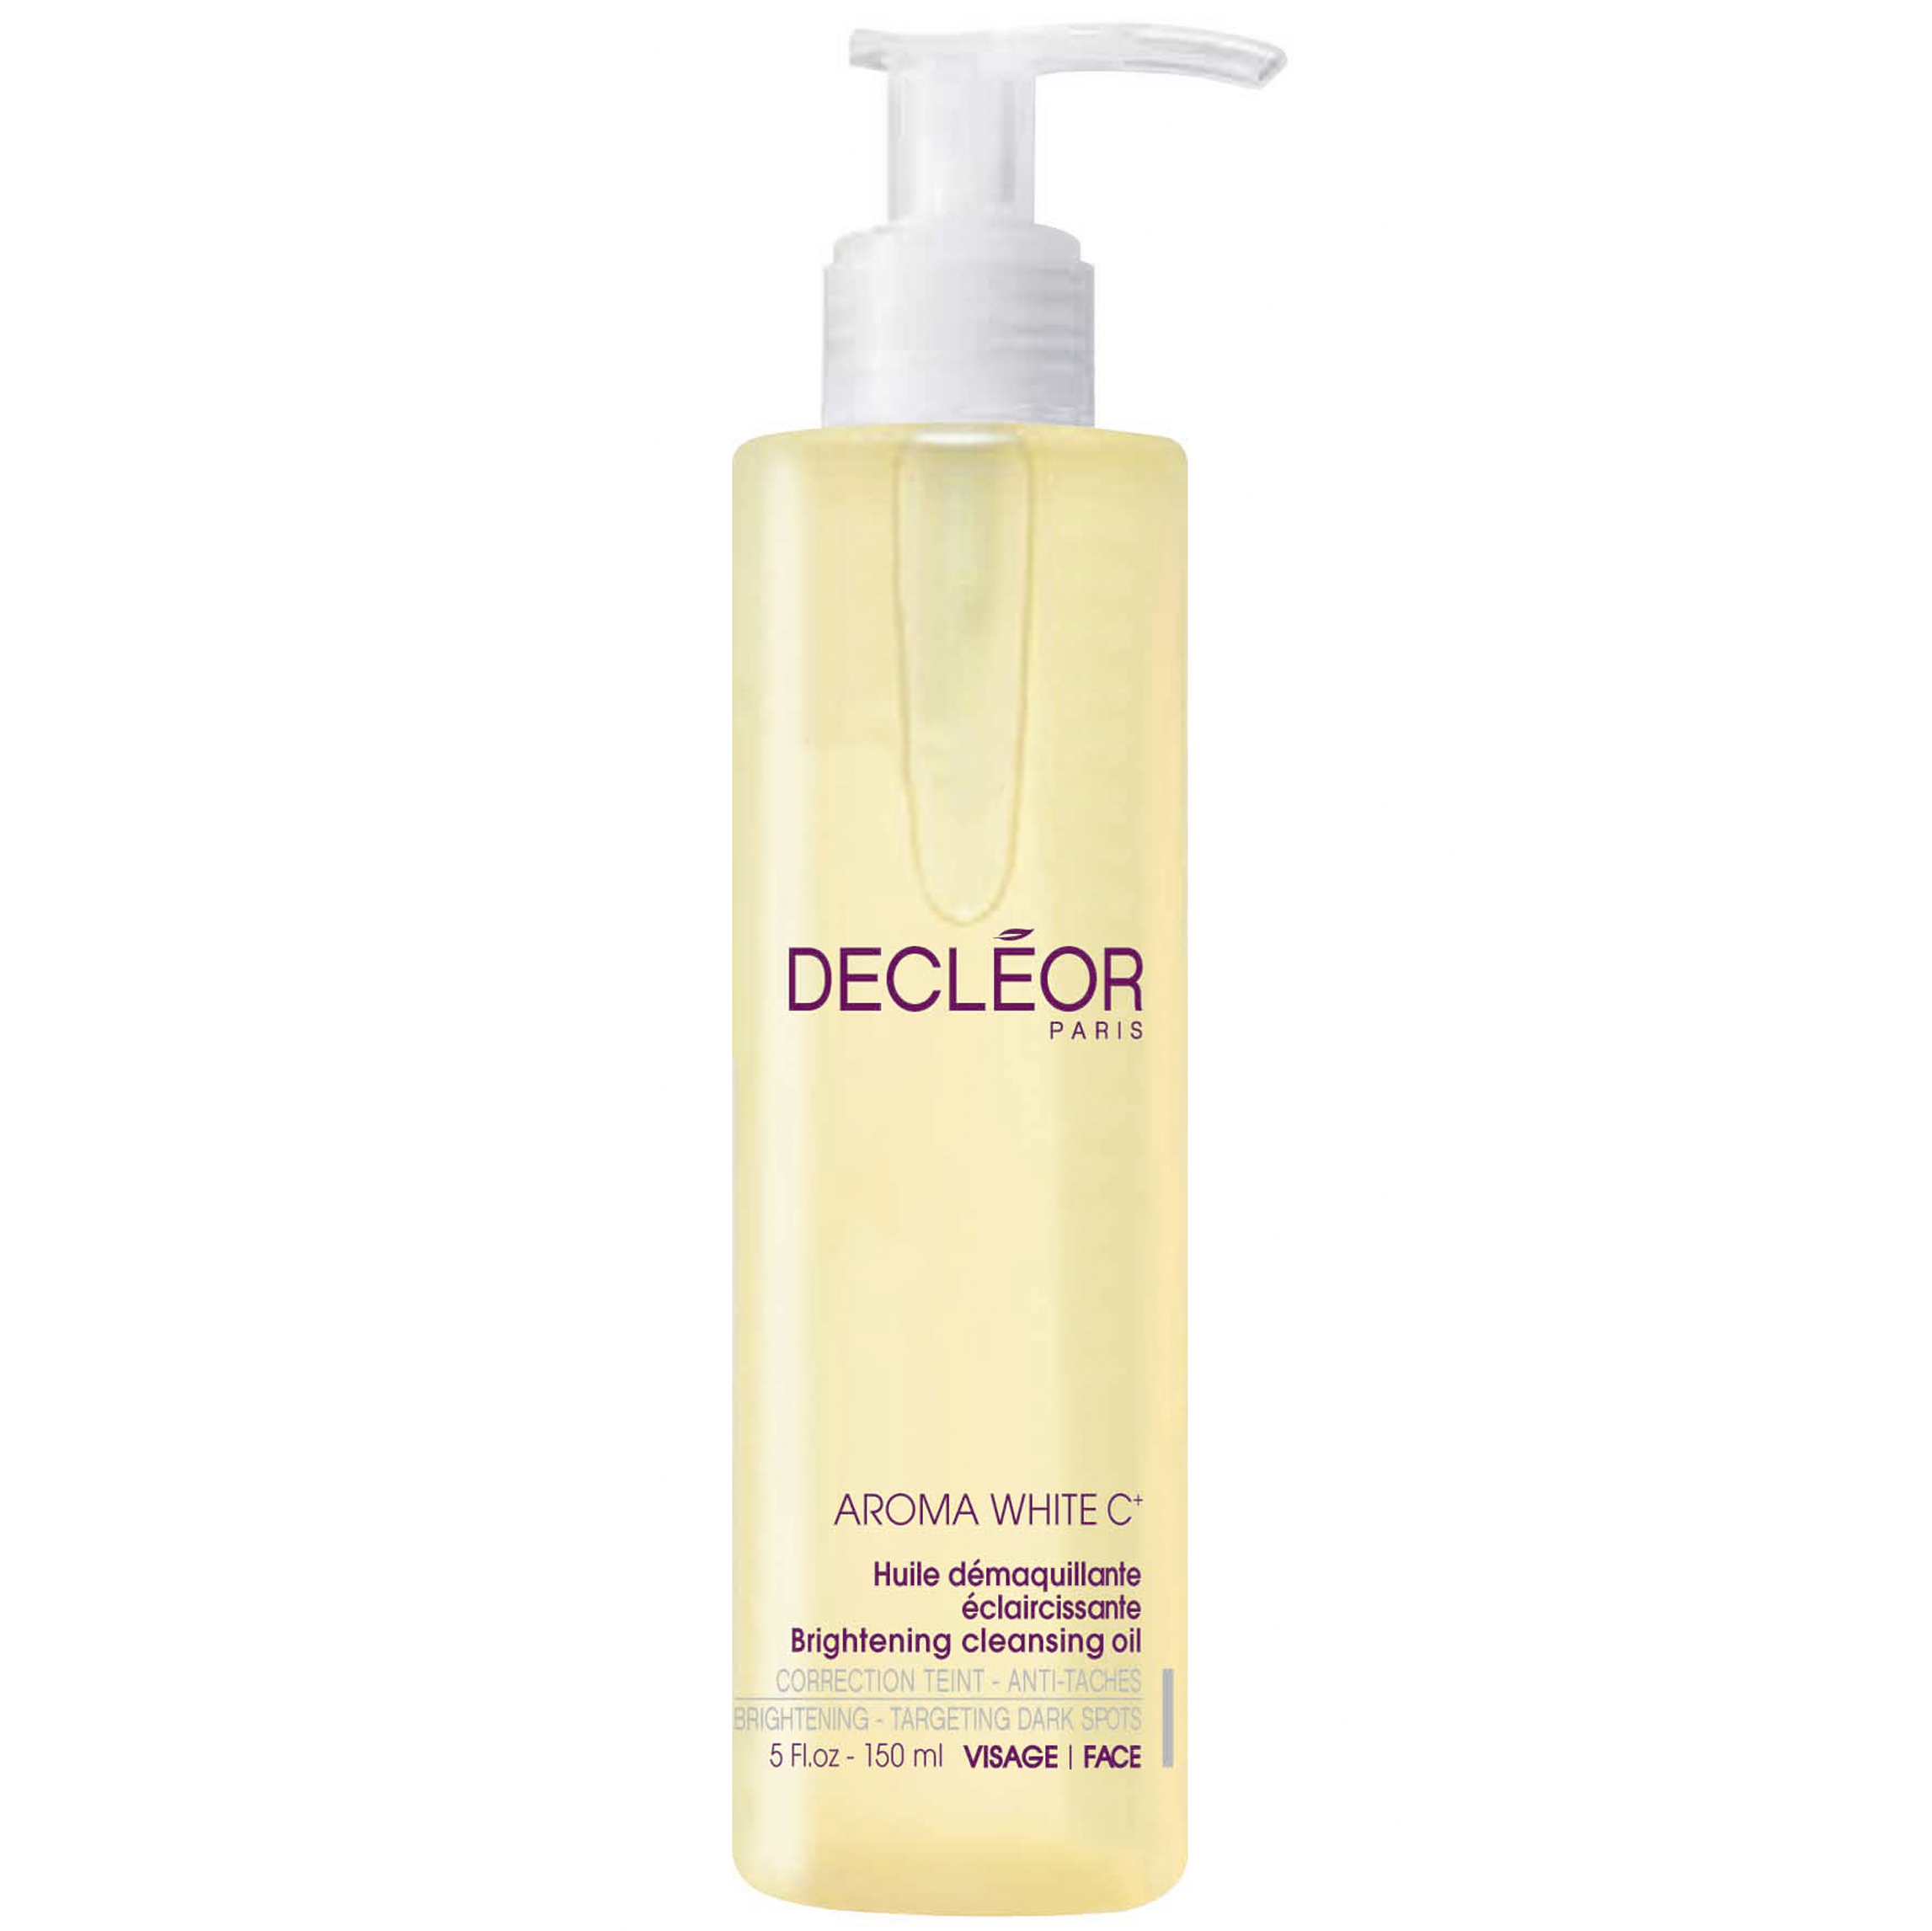 Image of Decleor Aroma White C+ Brightening Cleansing Oil 150ml